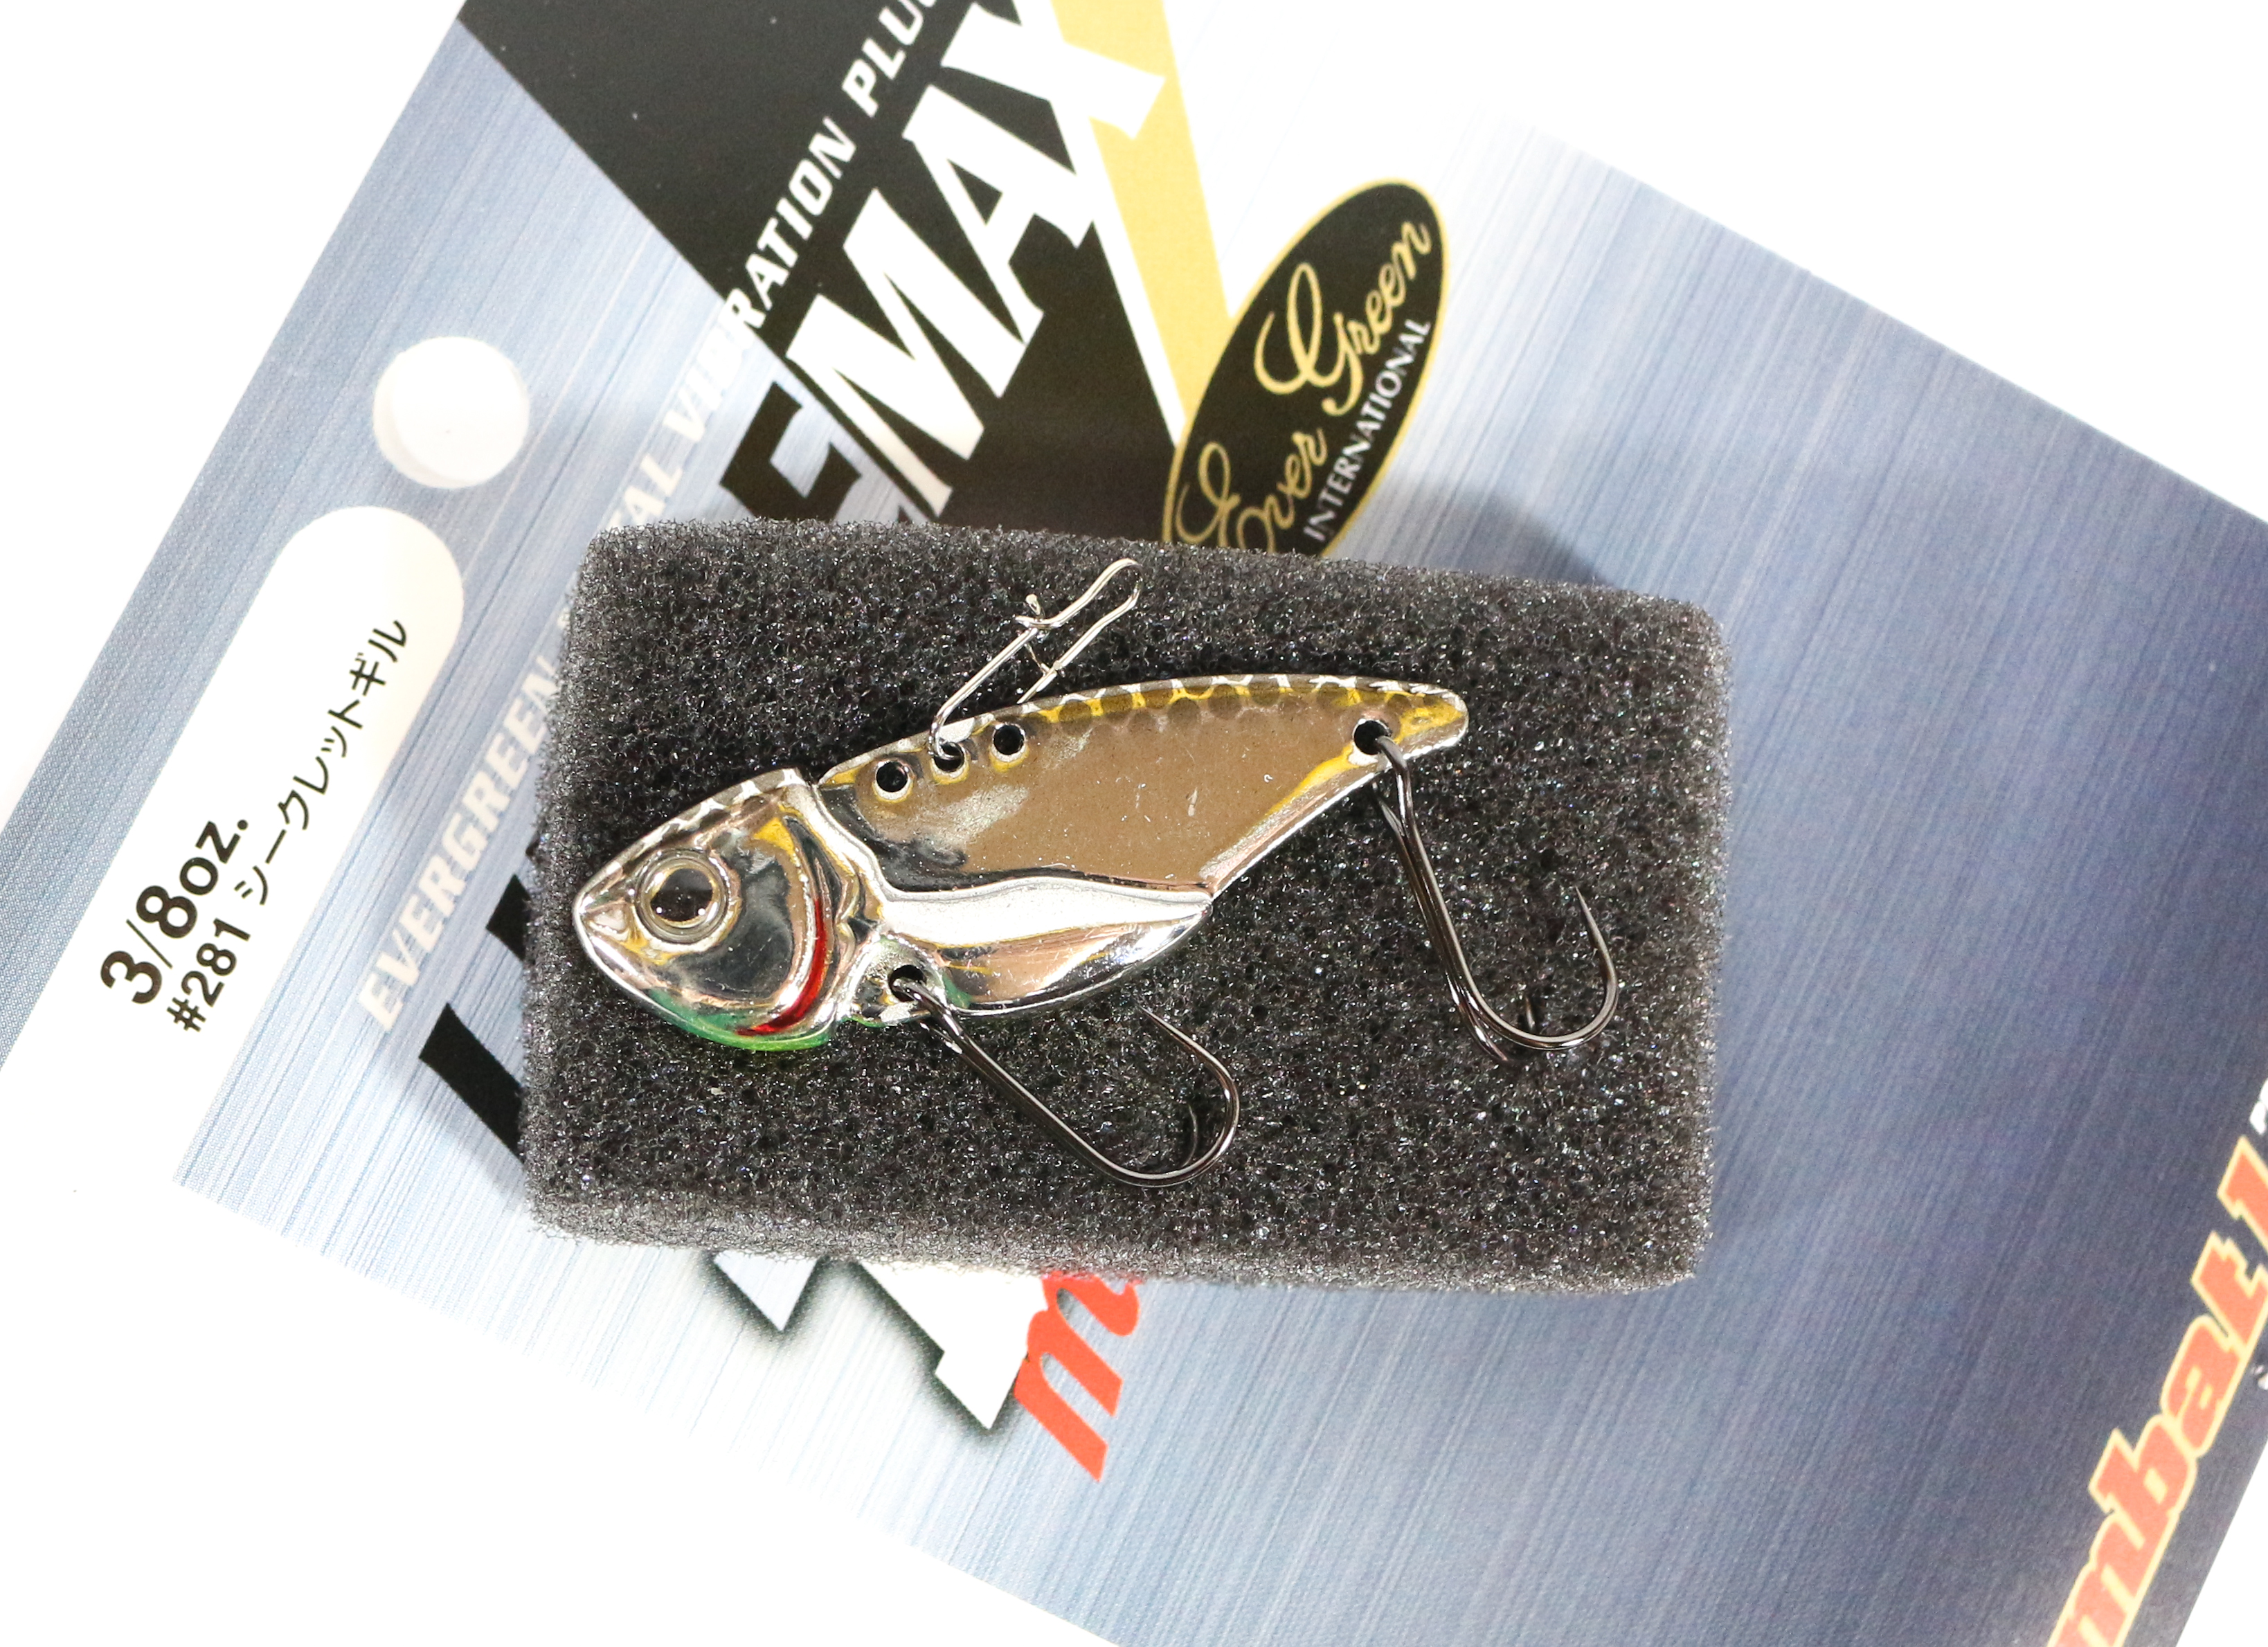 Sale Evergreen Little Max TG Muscle Metal Vibration 3/8 oz Lure 53 (0645)